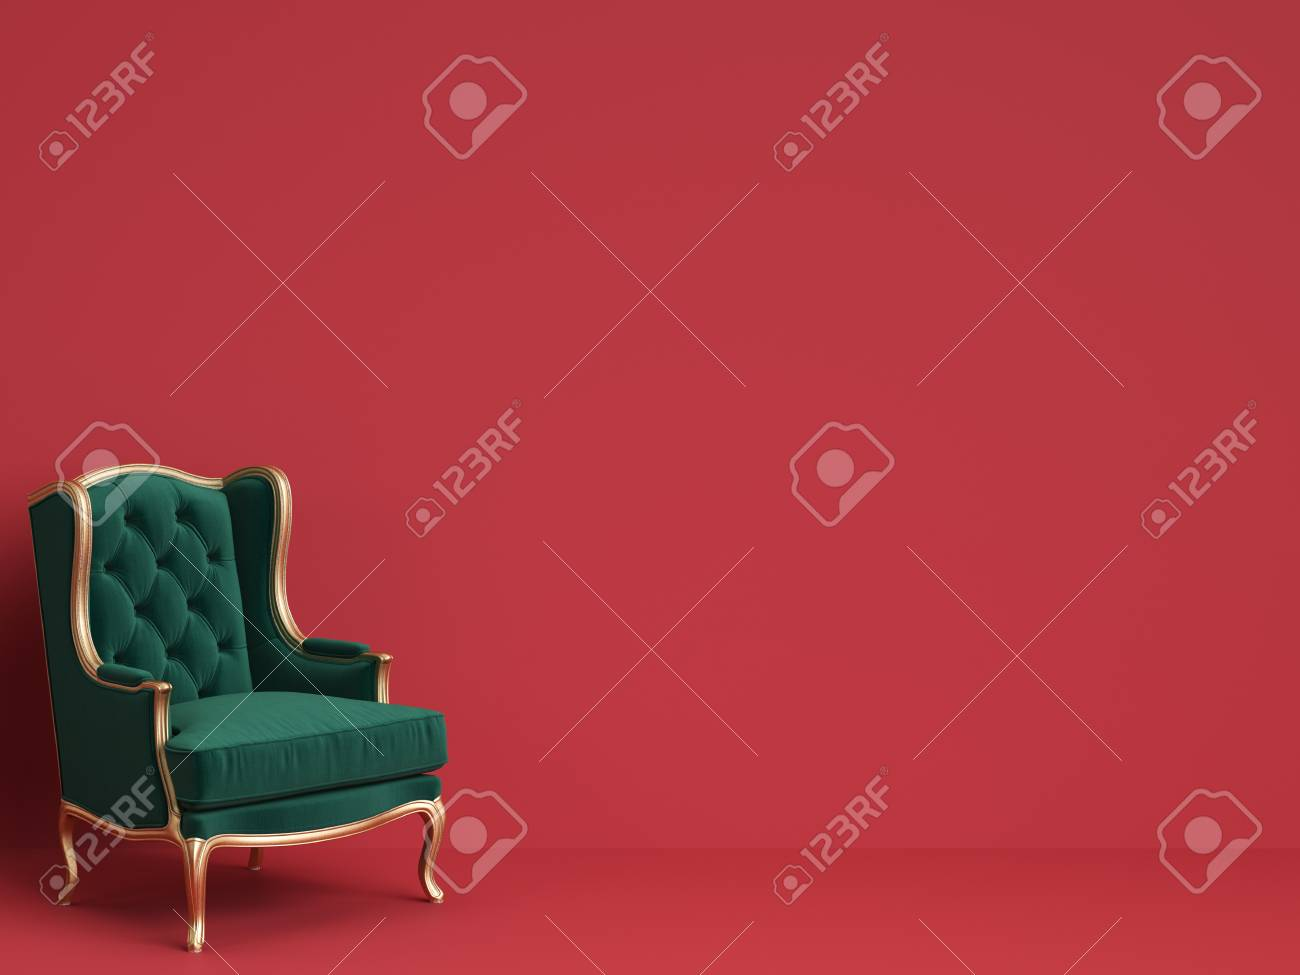 Classic Chair In Emerald Green And Gold On Red Background With Copy SpaceDigital Illustration